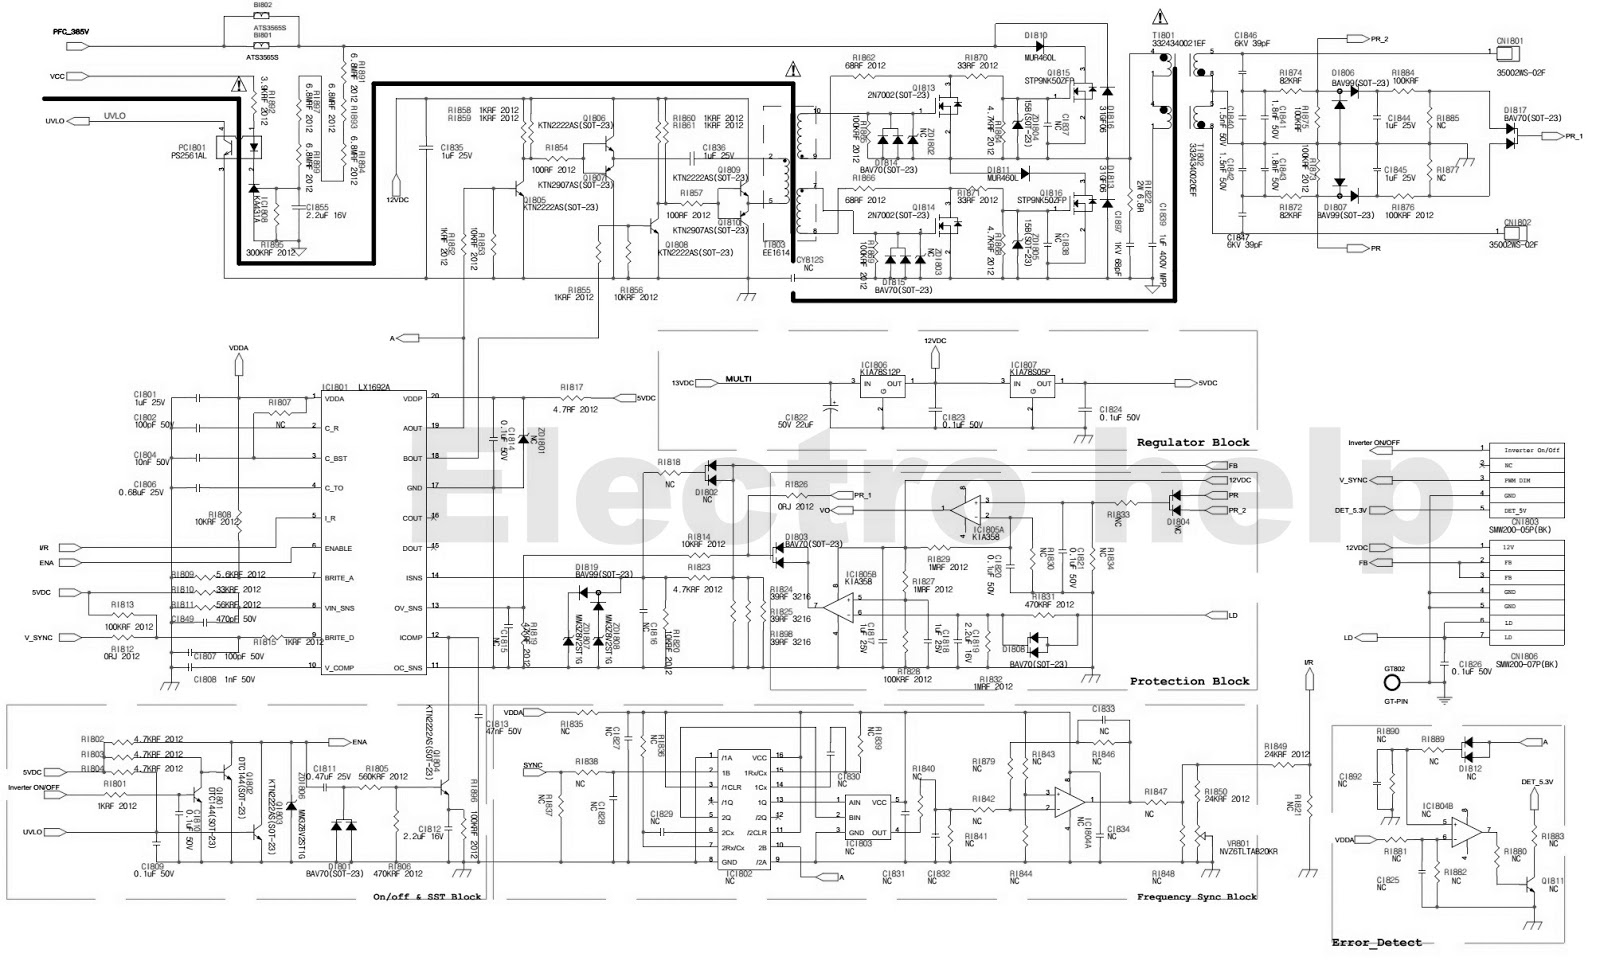 Sony Lcd Tv Power Supply Circuit Diagram Data Abb Earthleakage Breaker F364 Nib Wire Schema U2022 Rh Lemise Co Schematics Components